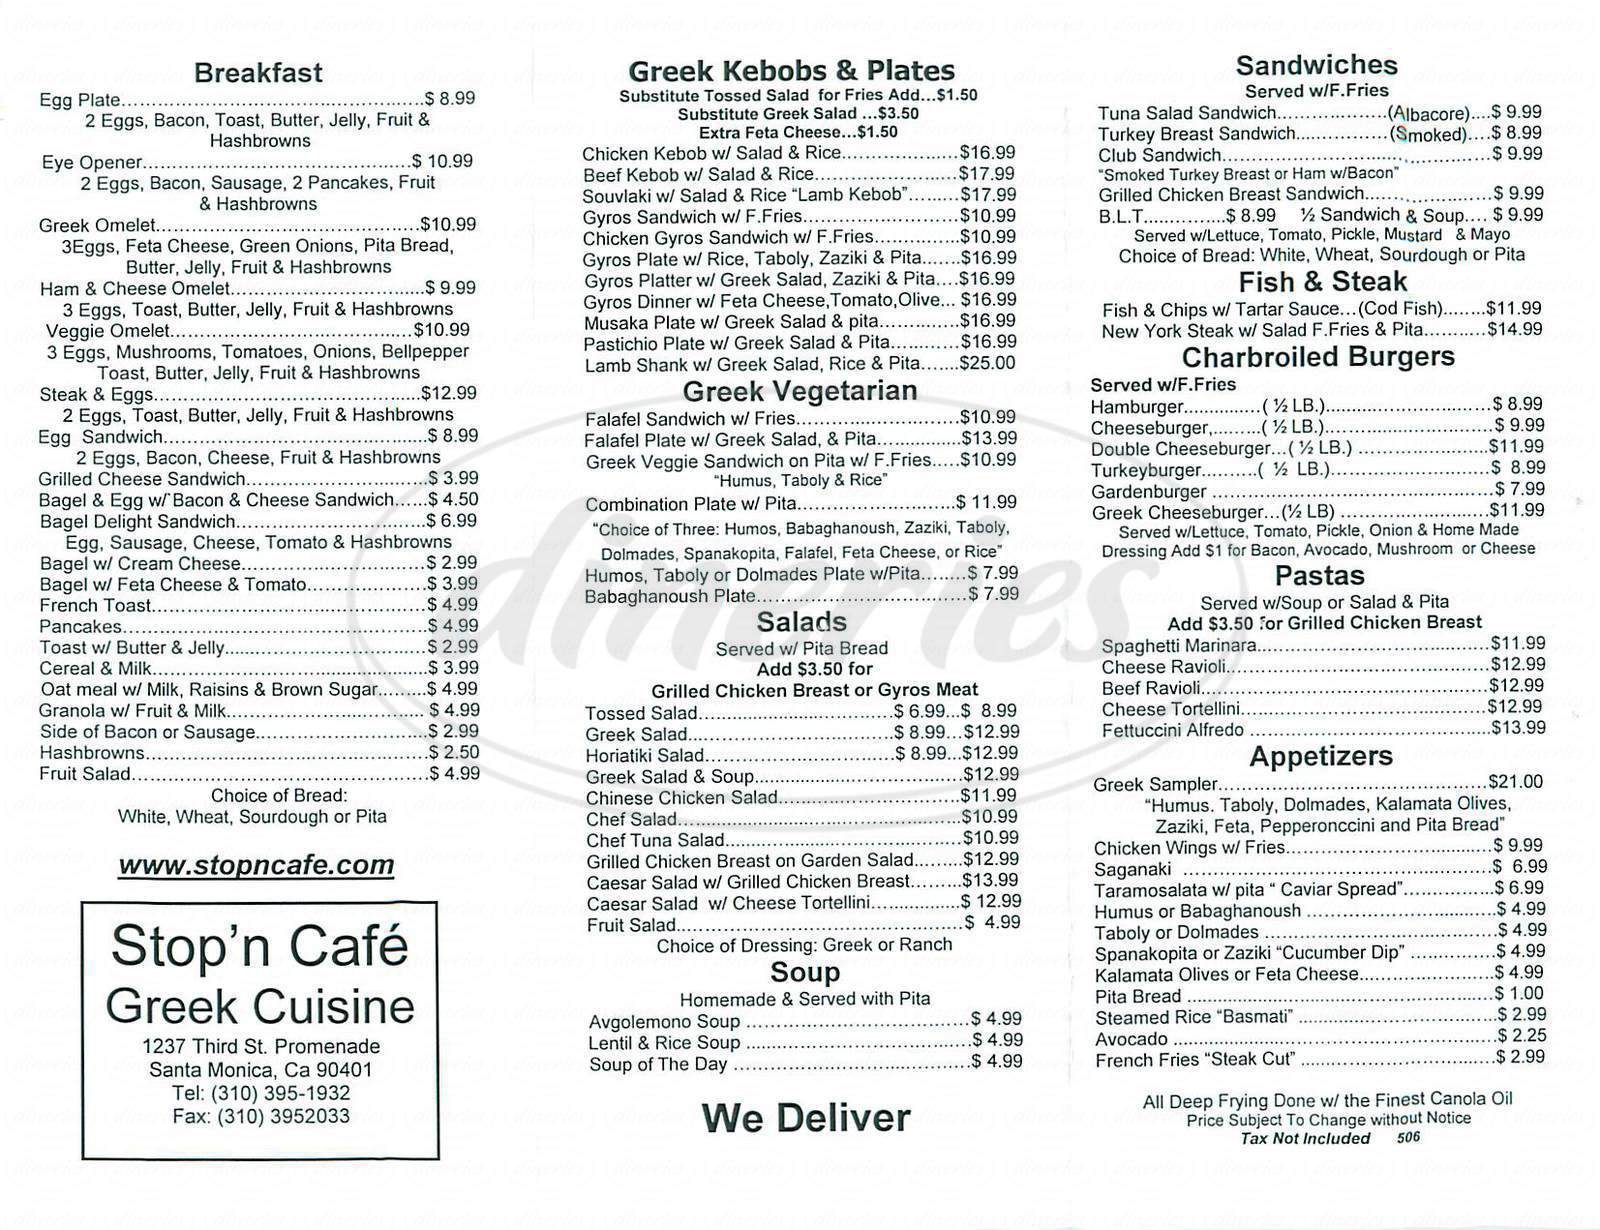 menu for Stop N Café Greek Cuisine